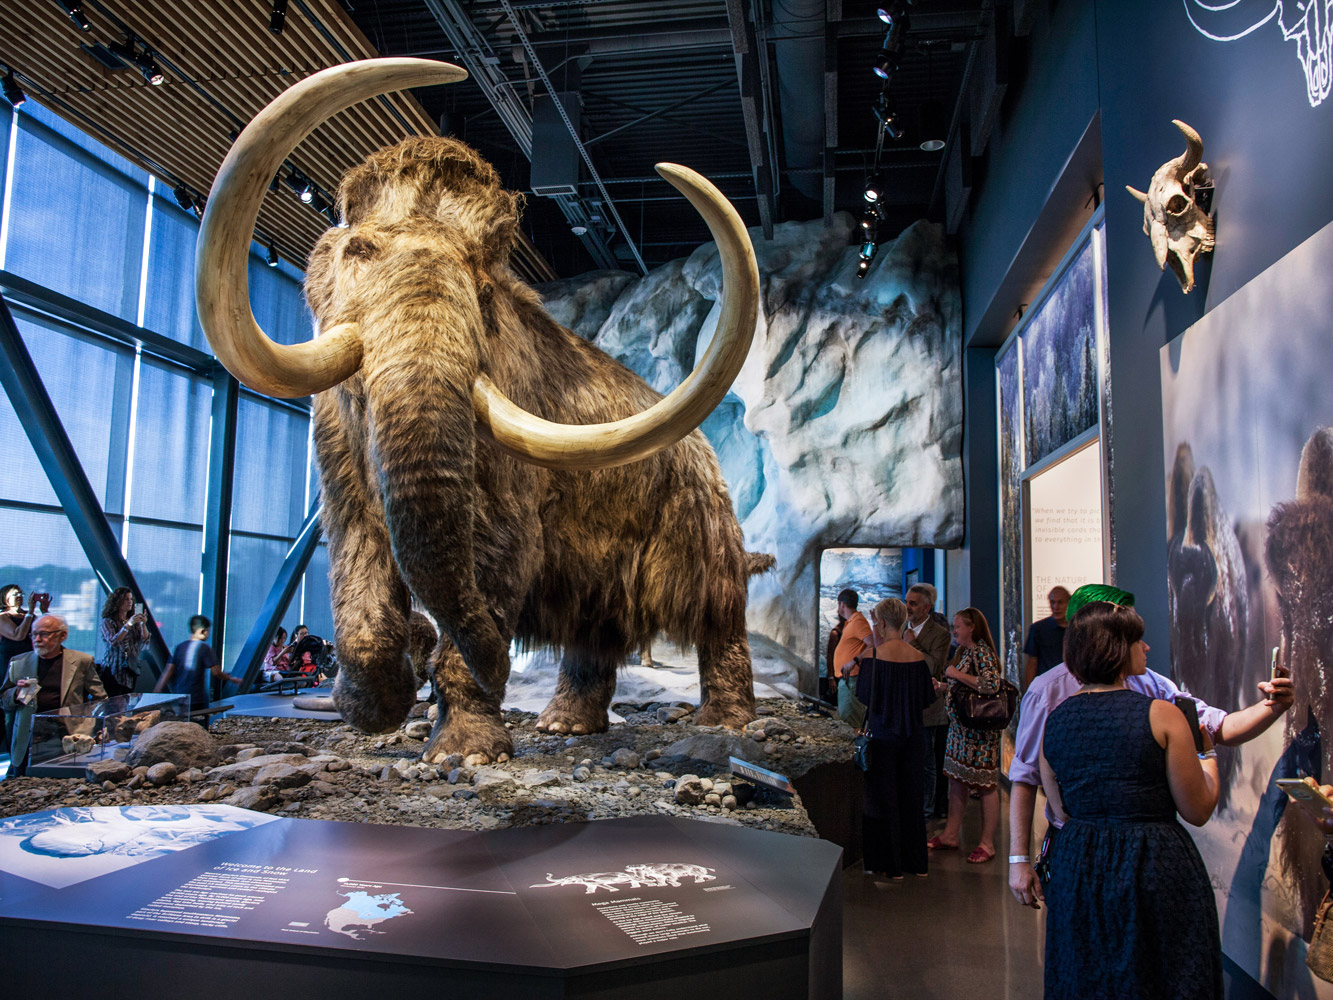 An artist's rendering of a full-size woolly mammoth in the Bell Museum's gallery